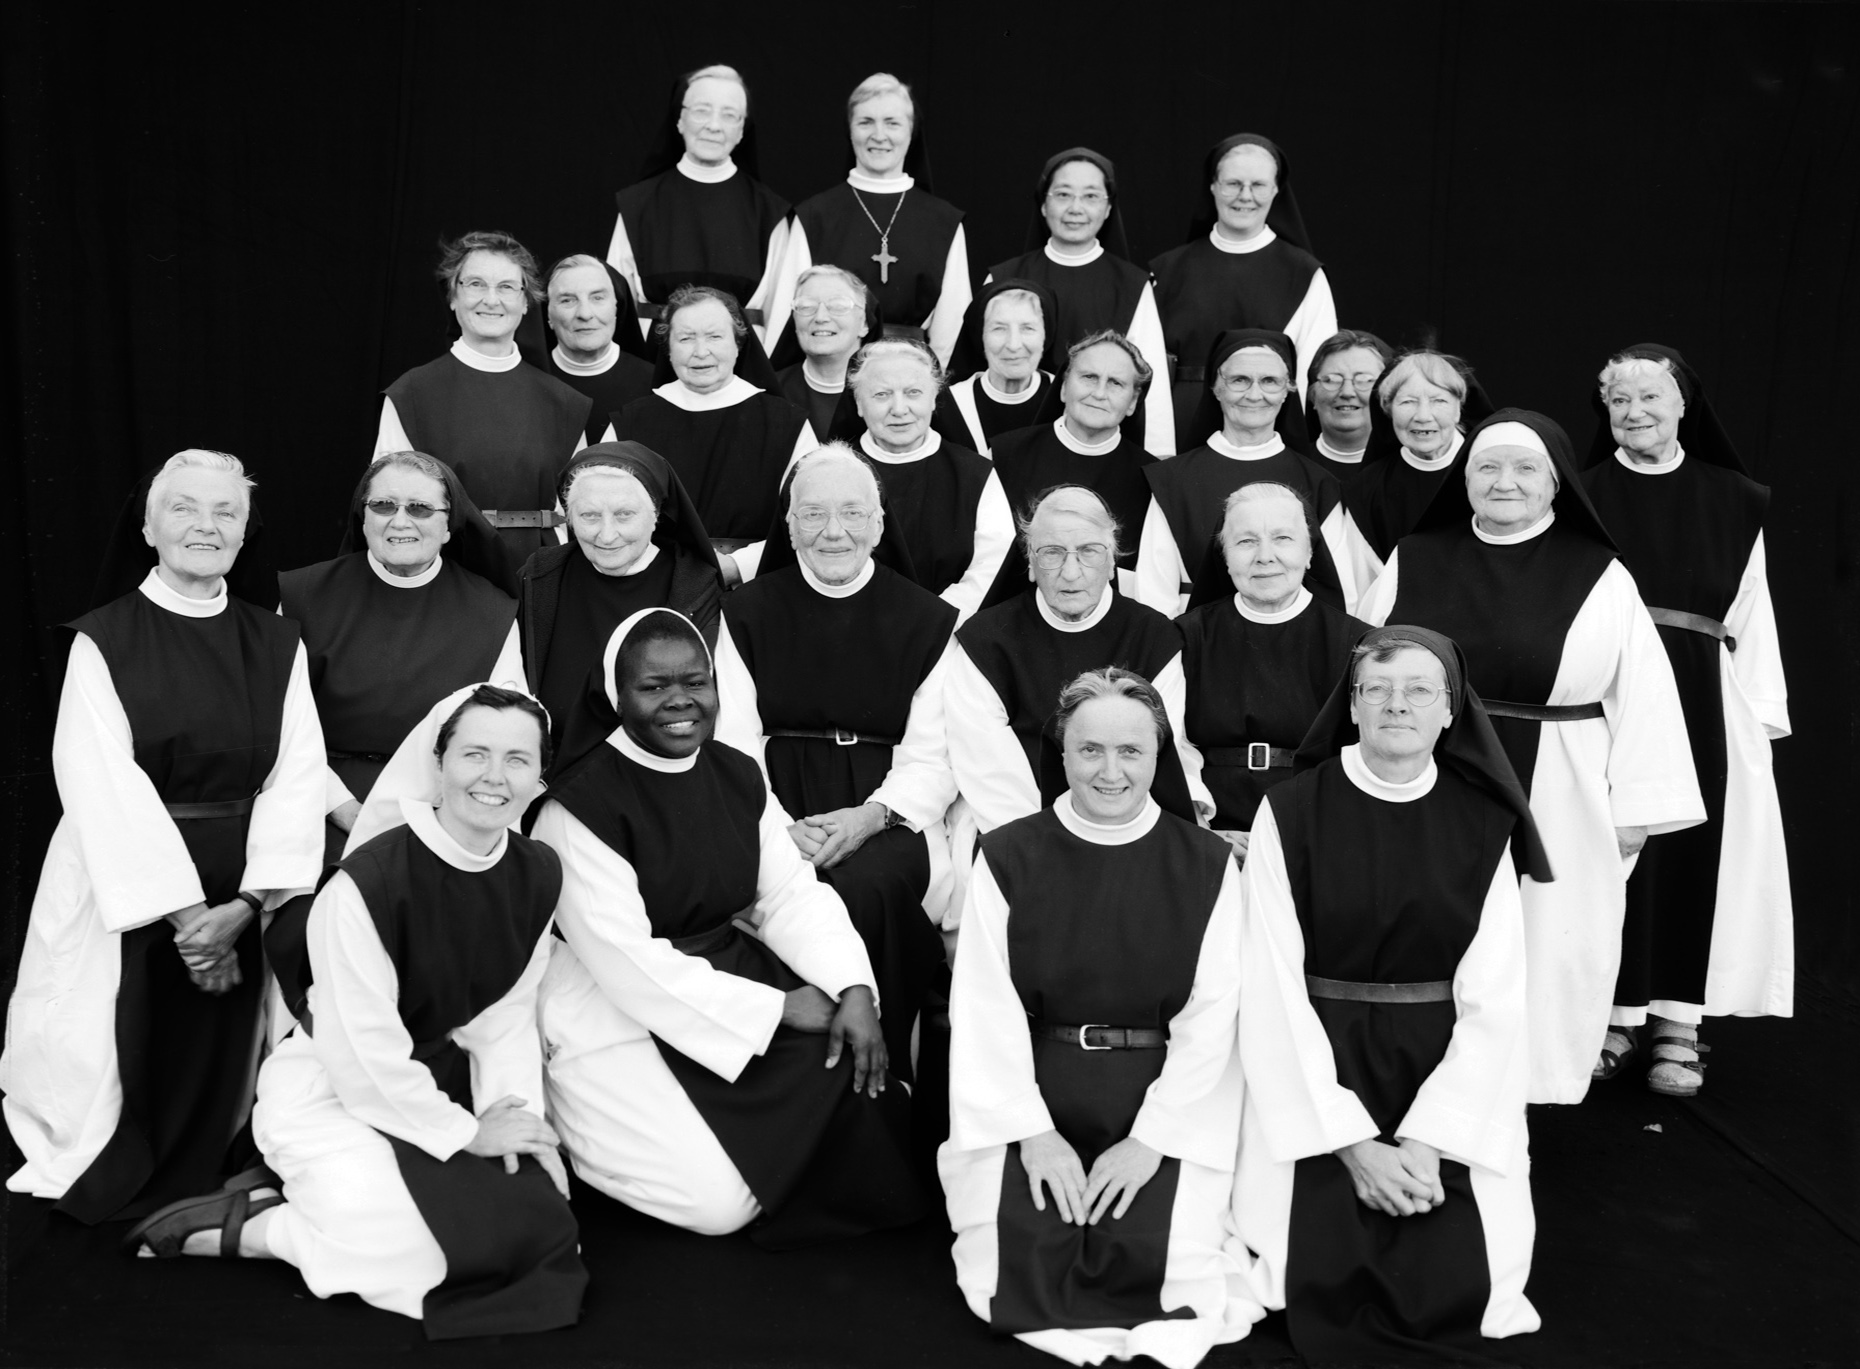 Axel Bernstorff, Collectable limited edition fine photographic art prints. Nuns II. From the Cistercian Order, Ireland